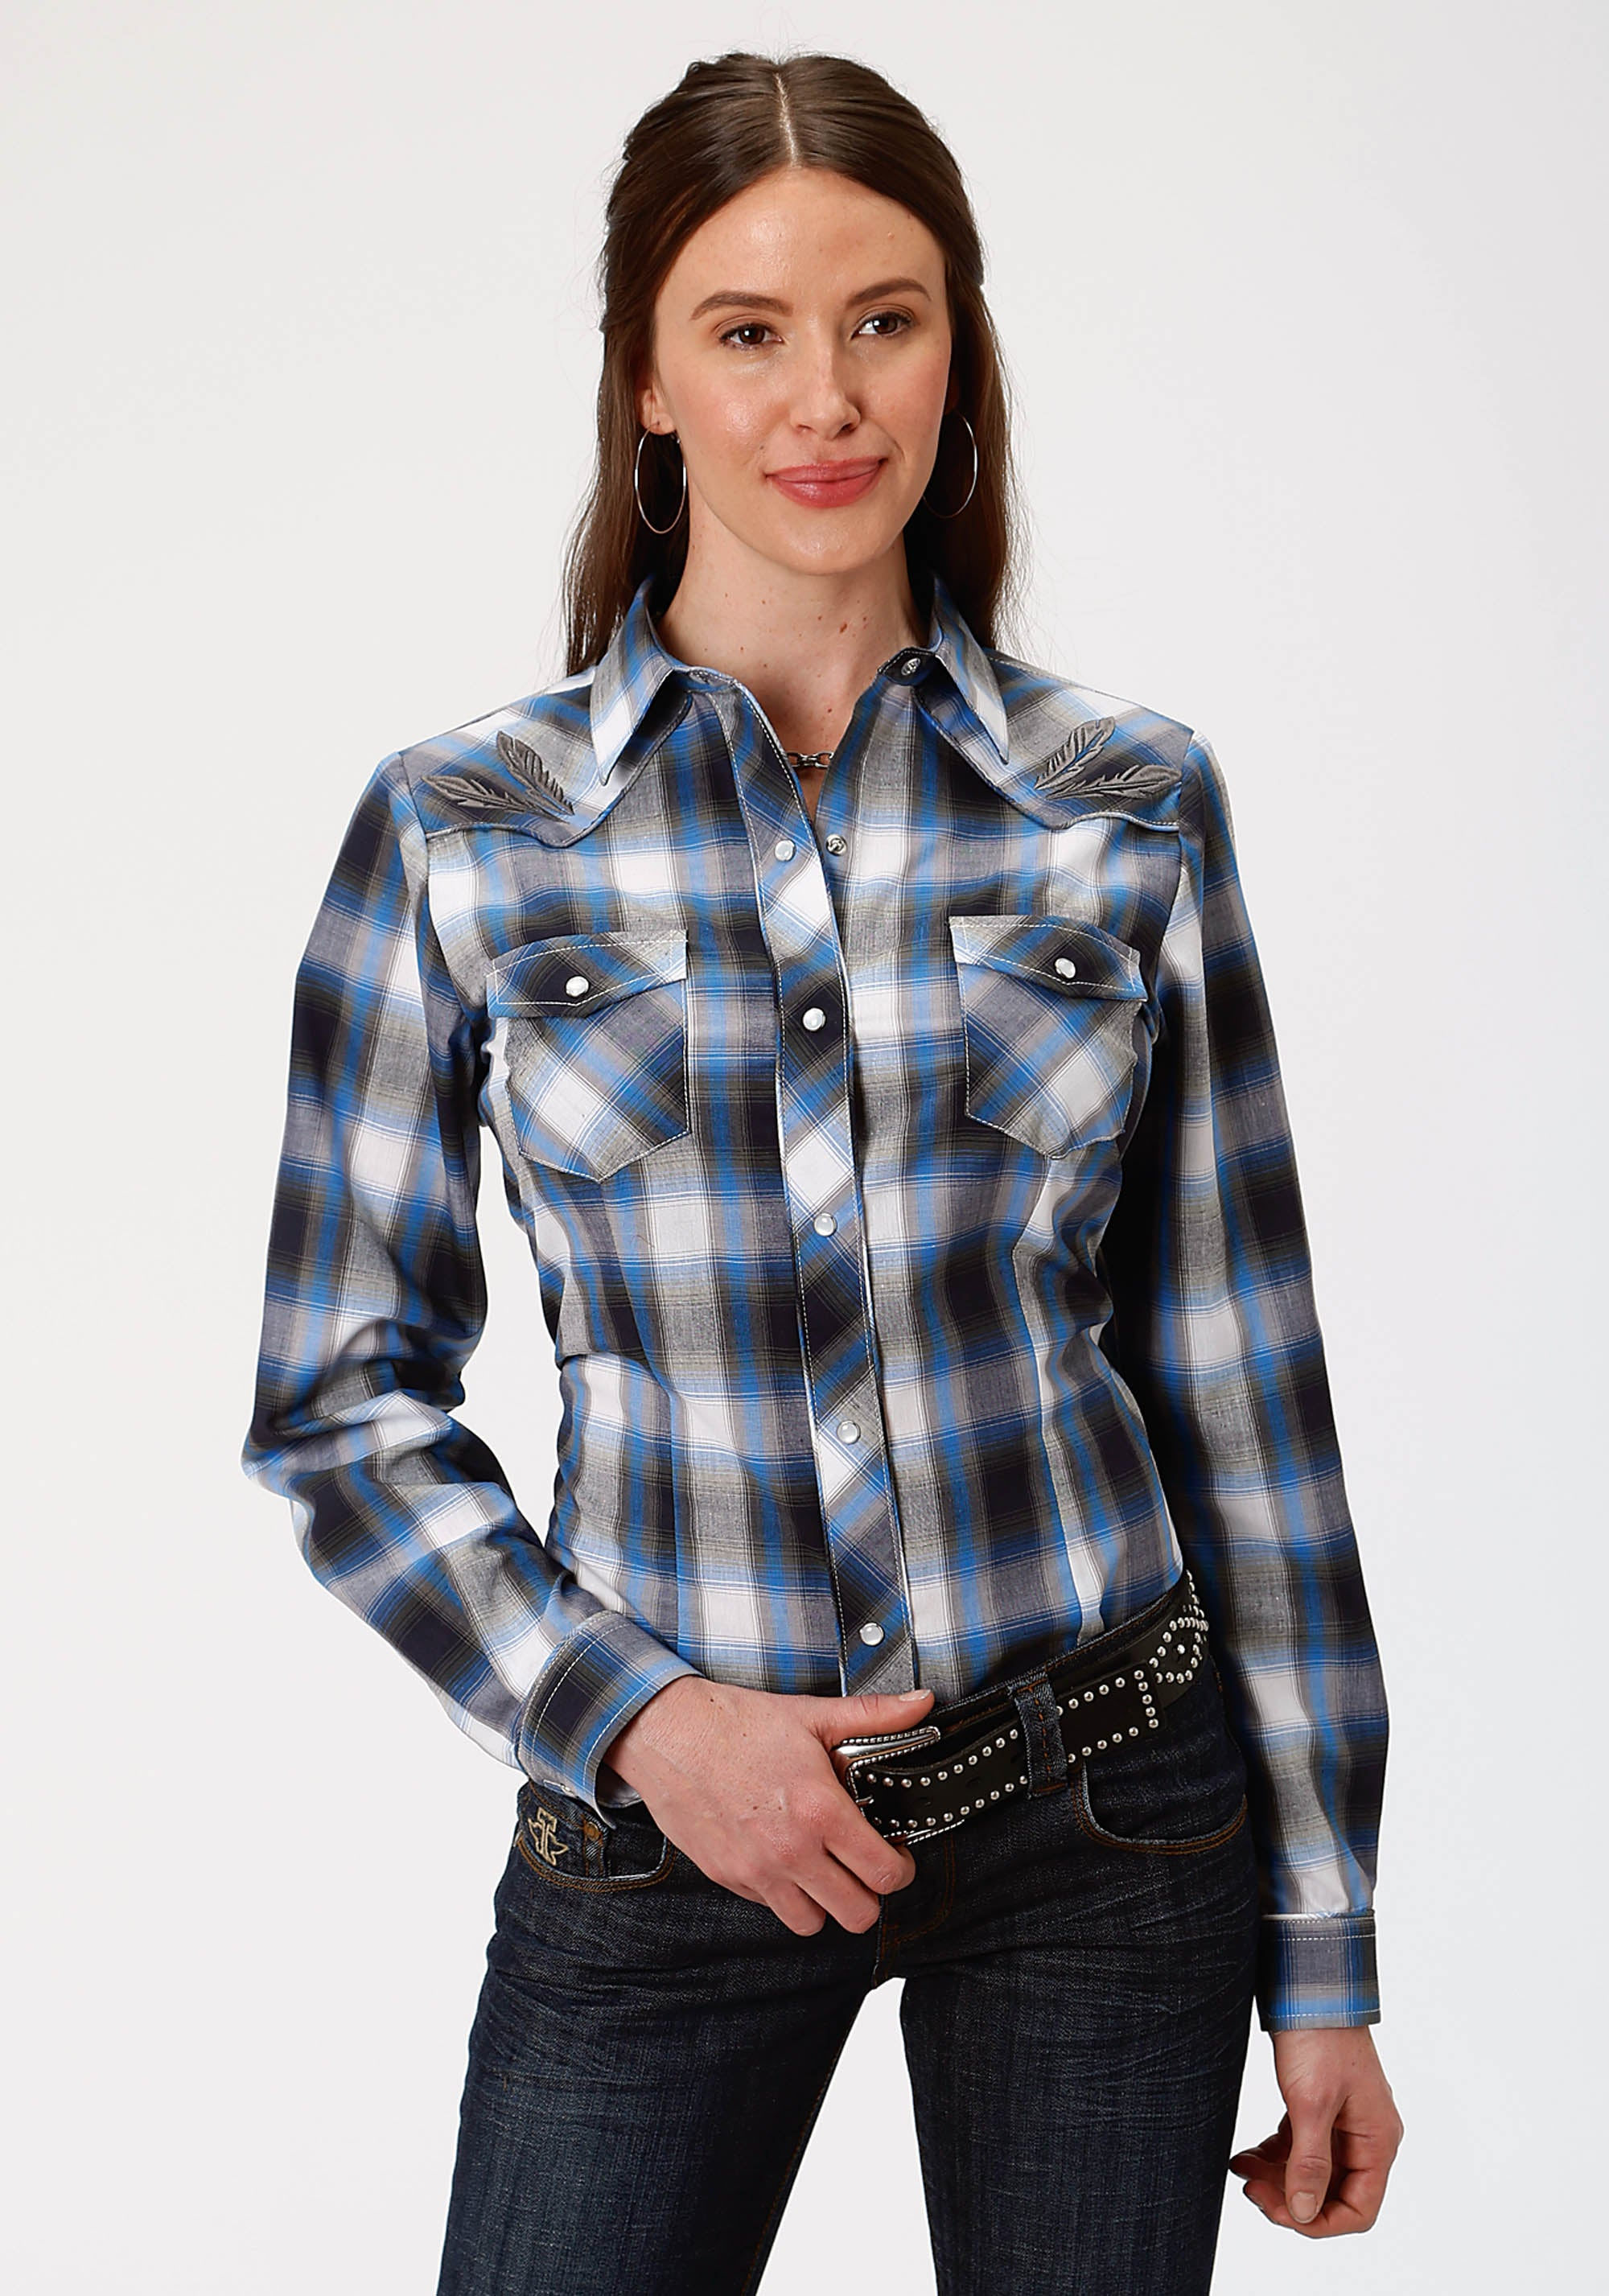 ROPER WOMENS BLUE 0022 SKY BLUE, NAVY, & OLIVE PLAID KARMAN SPECIAL STYLES LONG SLEEVE